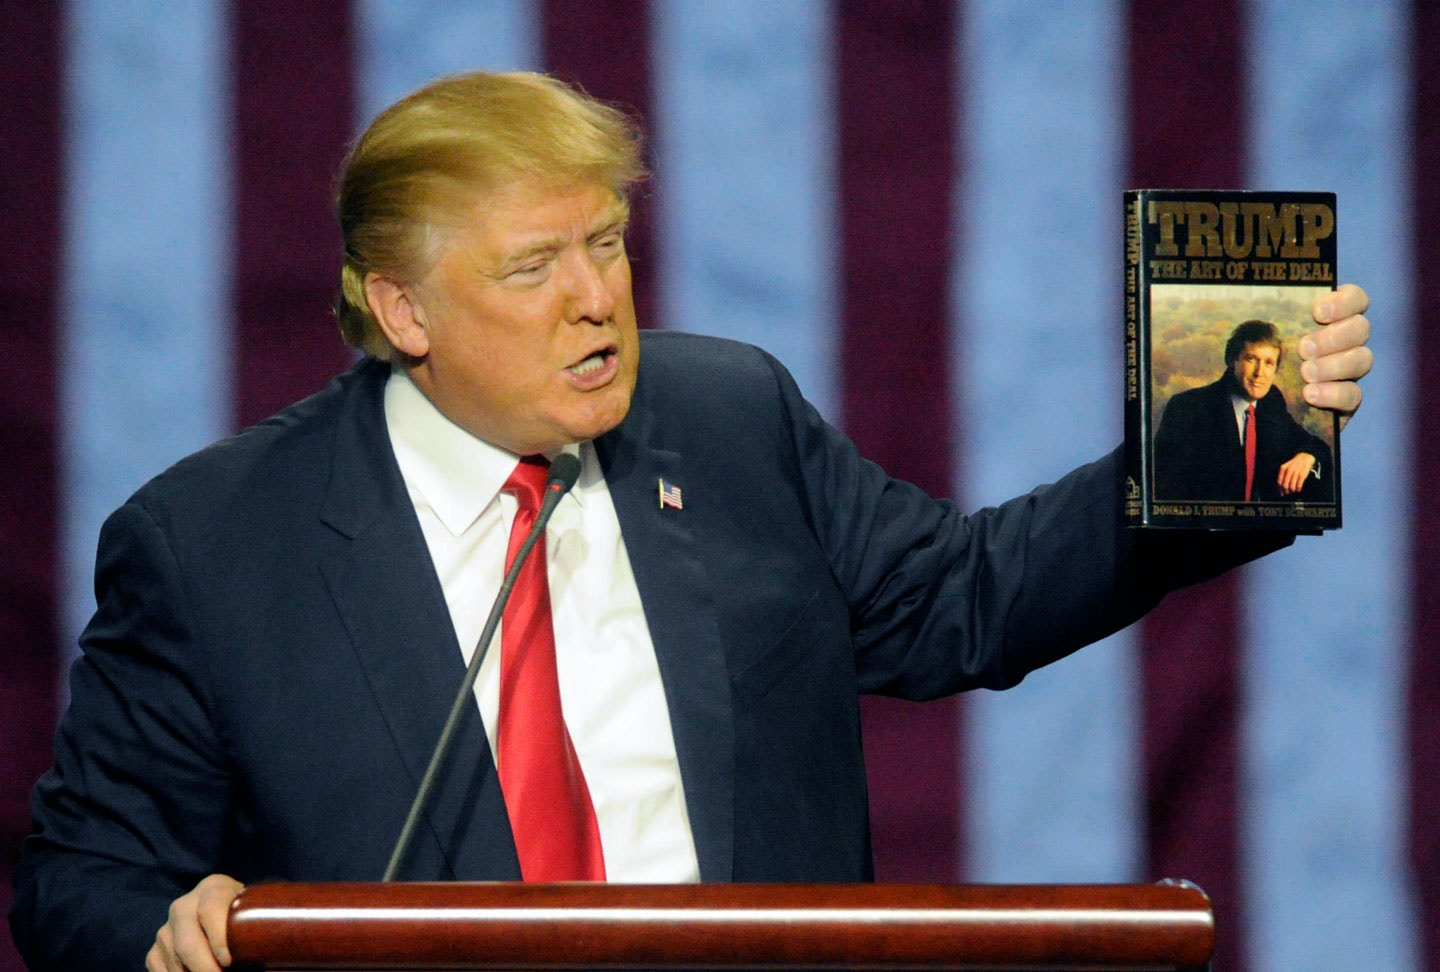 Republican presidential candidate Donald Trump holds up his book 'The Art of the Deal', given to him by a fan as he speaks during a campaign stop Saturday, Nov. 21, 2015 in Birmingham, Ala. (AP Photo/Eric Schultz)